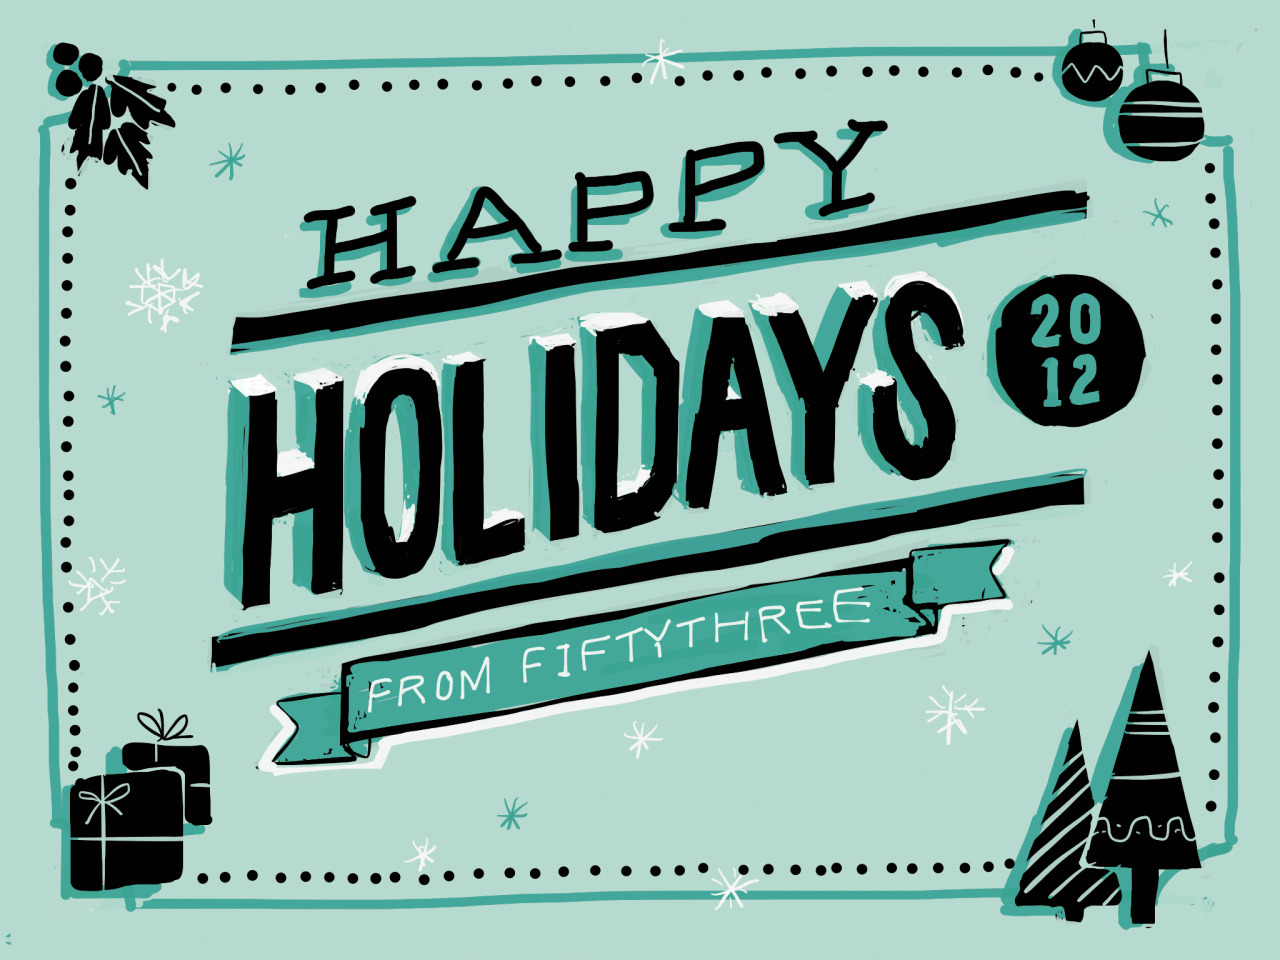 Happy Holidays from FiftyThree!